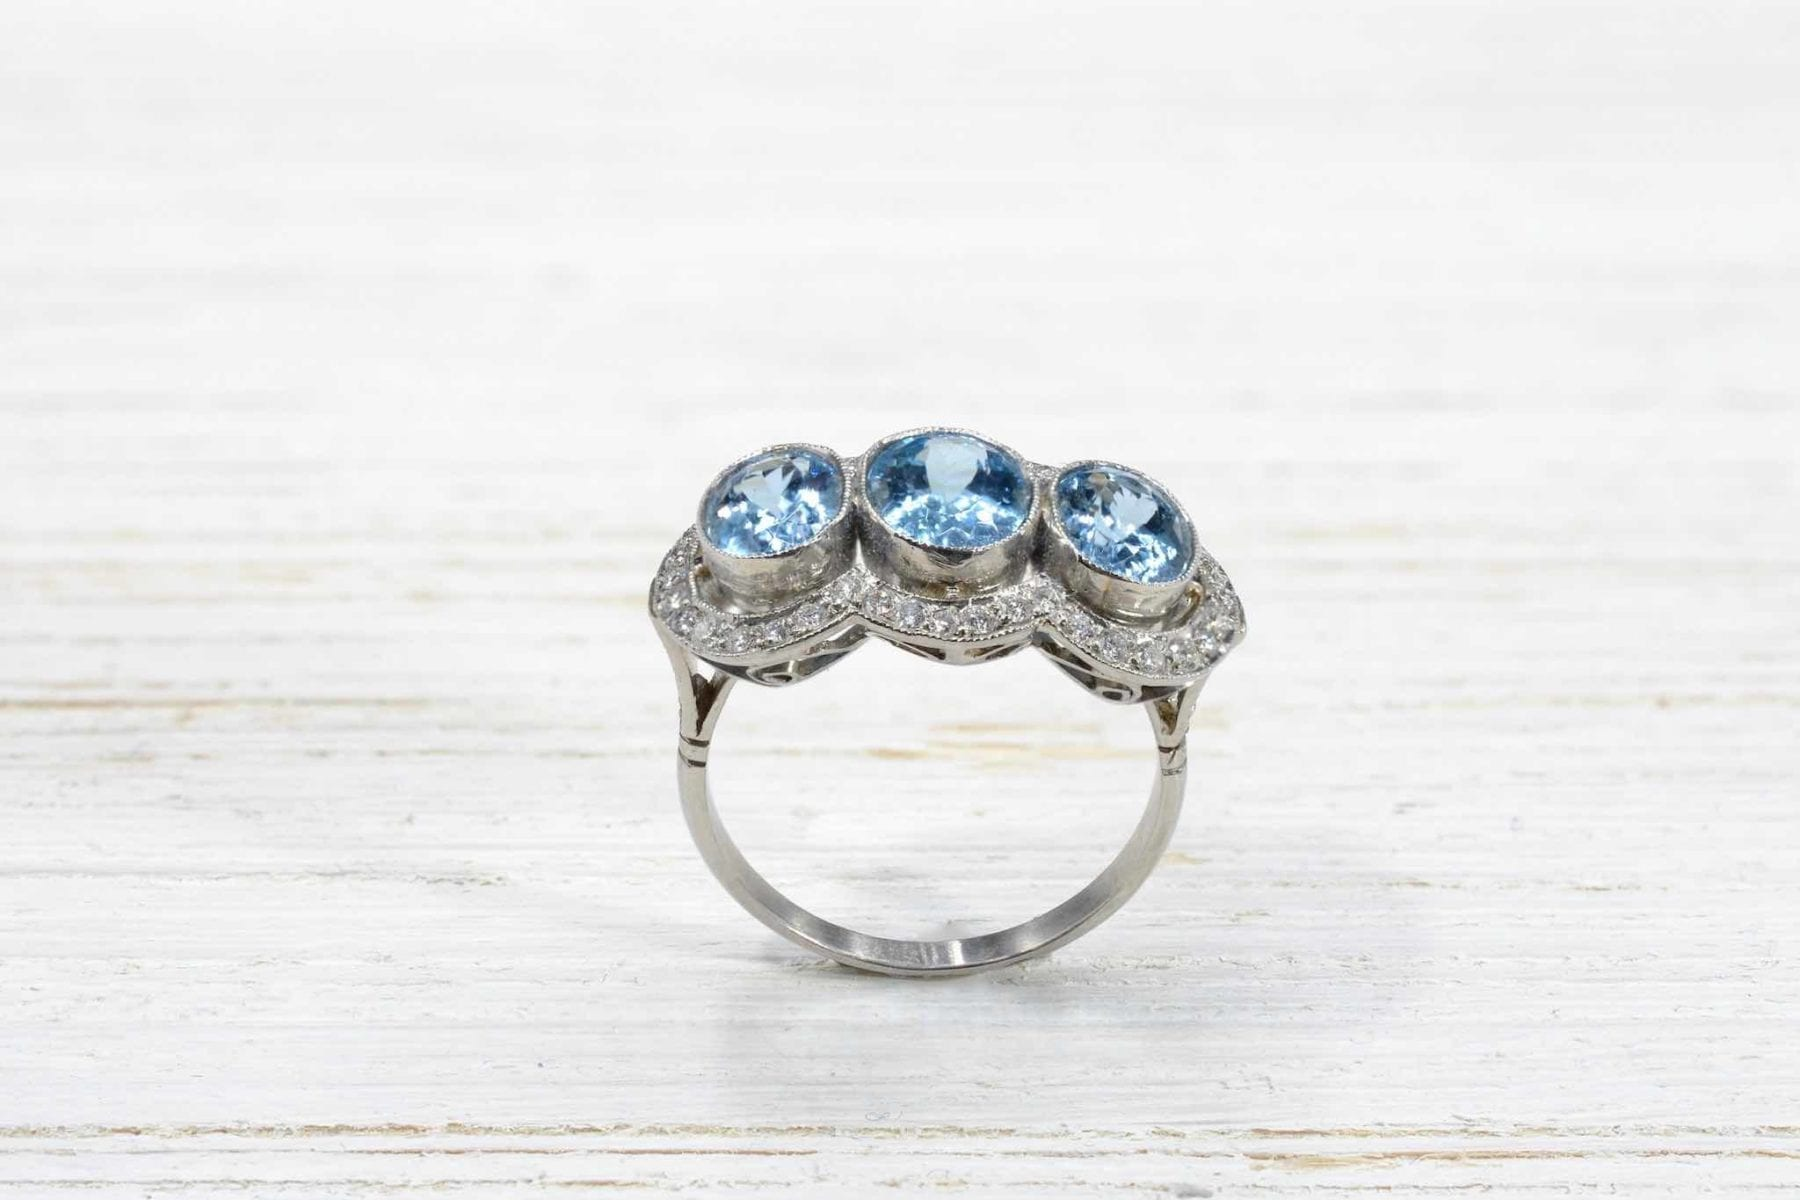 aquamarines and diamonds ring